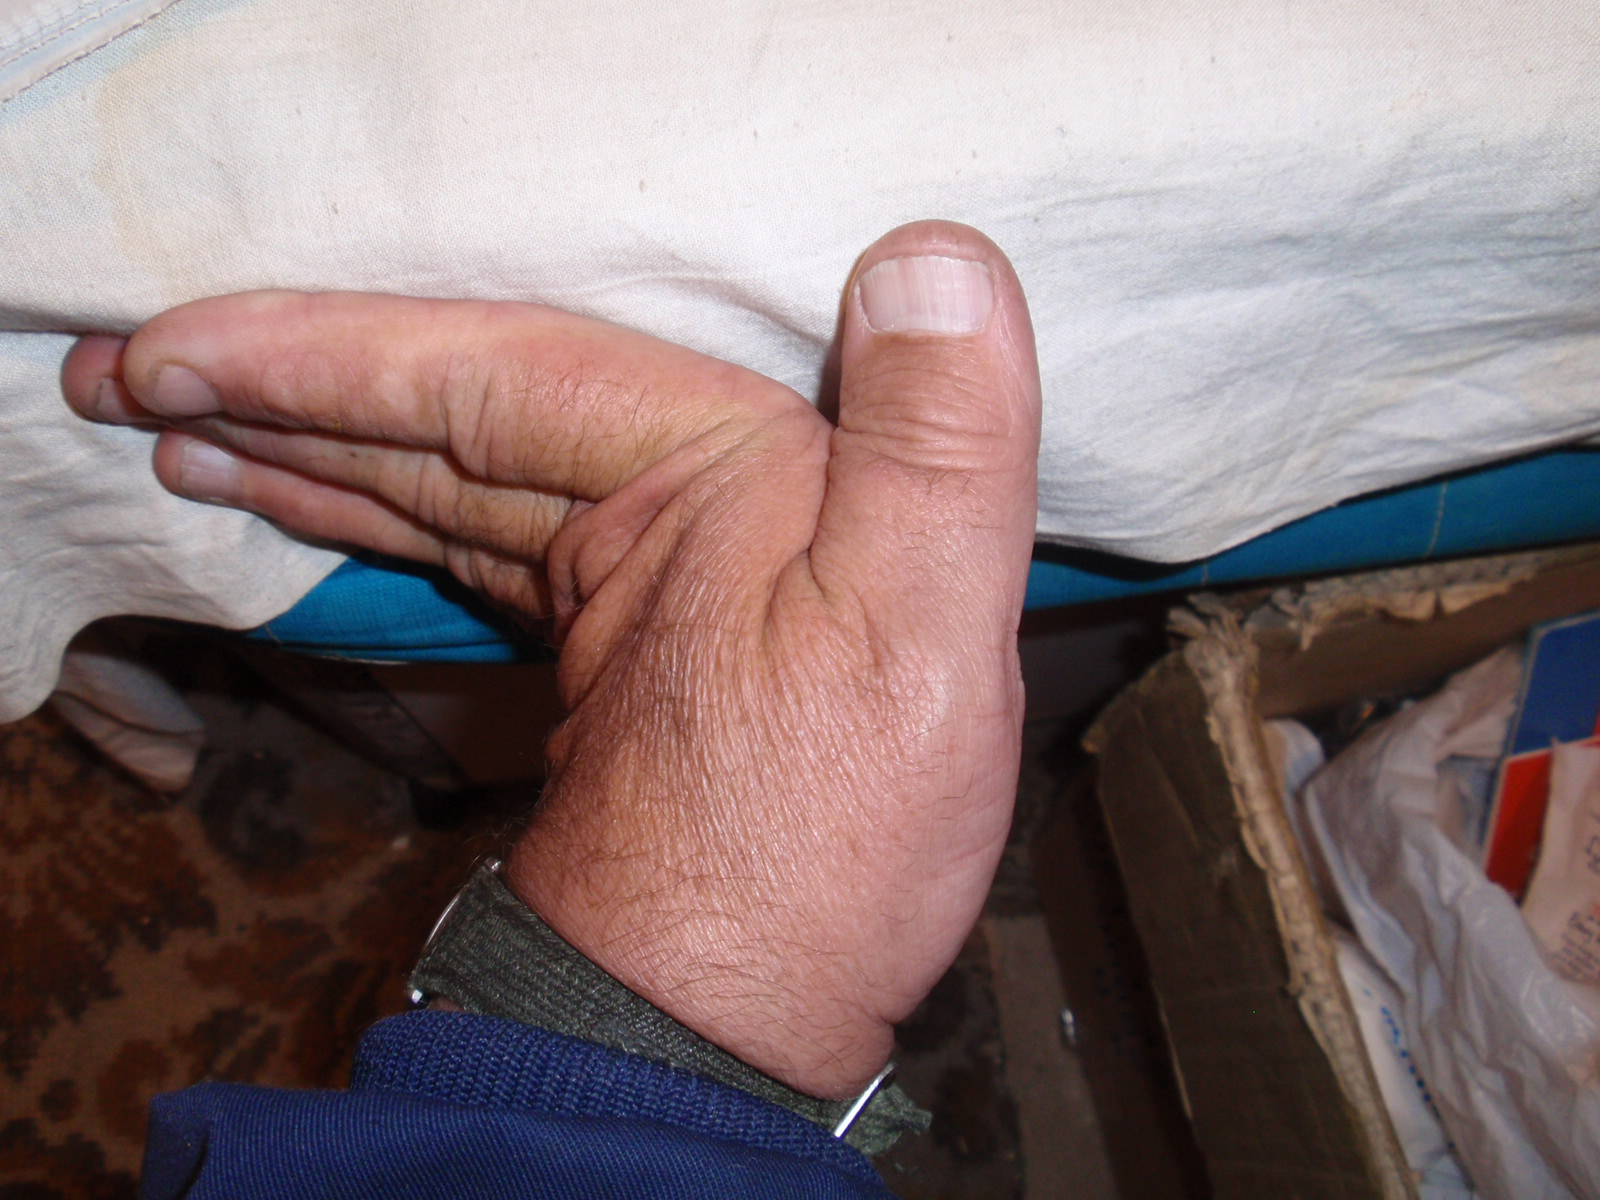 Hypermobile fingers -- they bend backwards to 90 degrees. By Anthony Appleyard [Public domain], via Wikimedia Commons